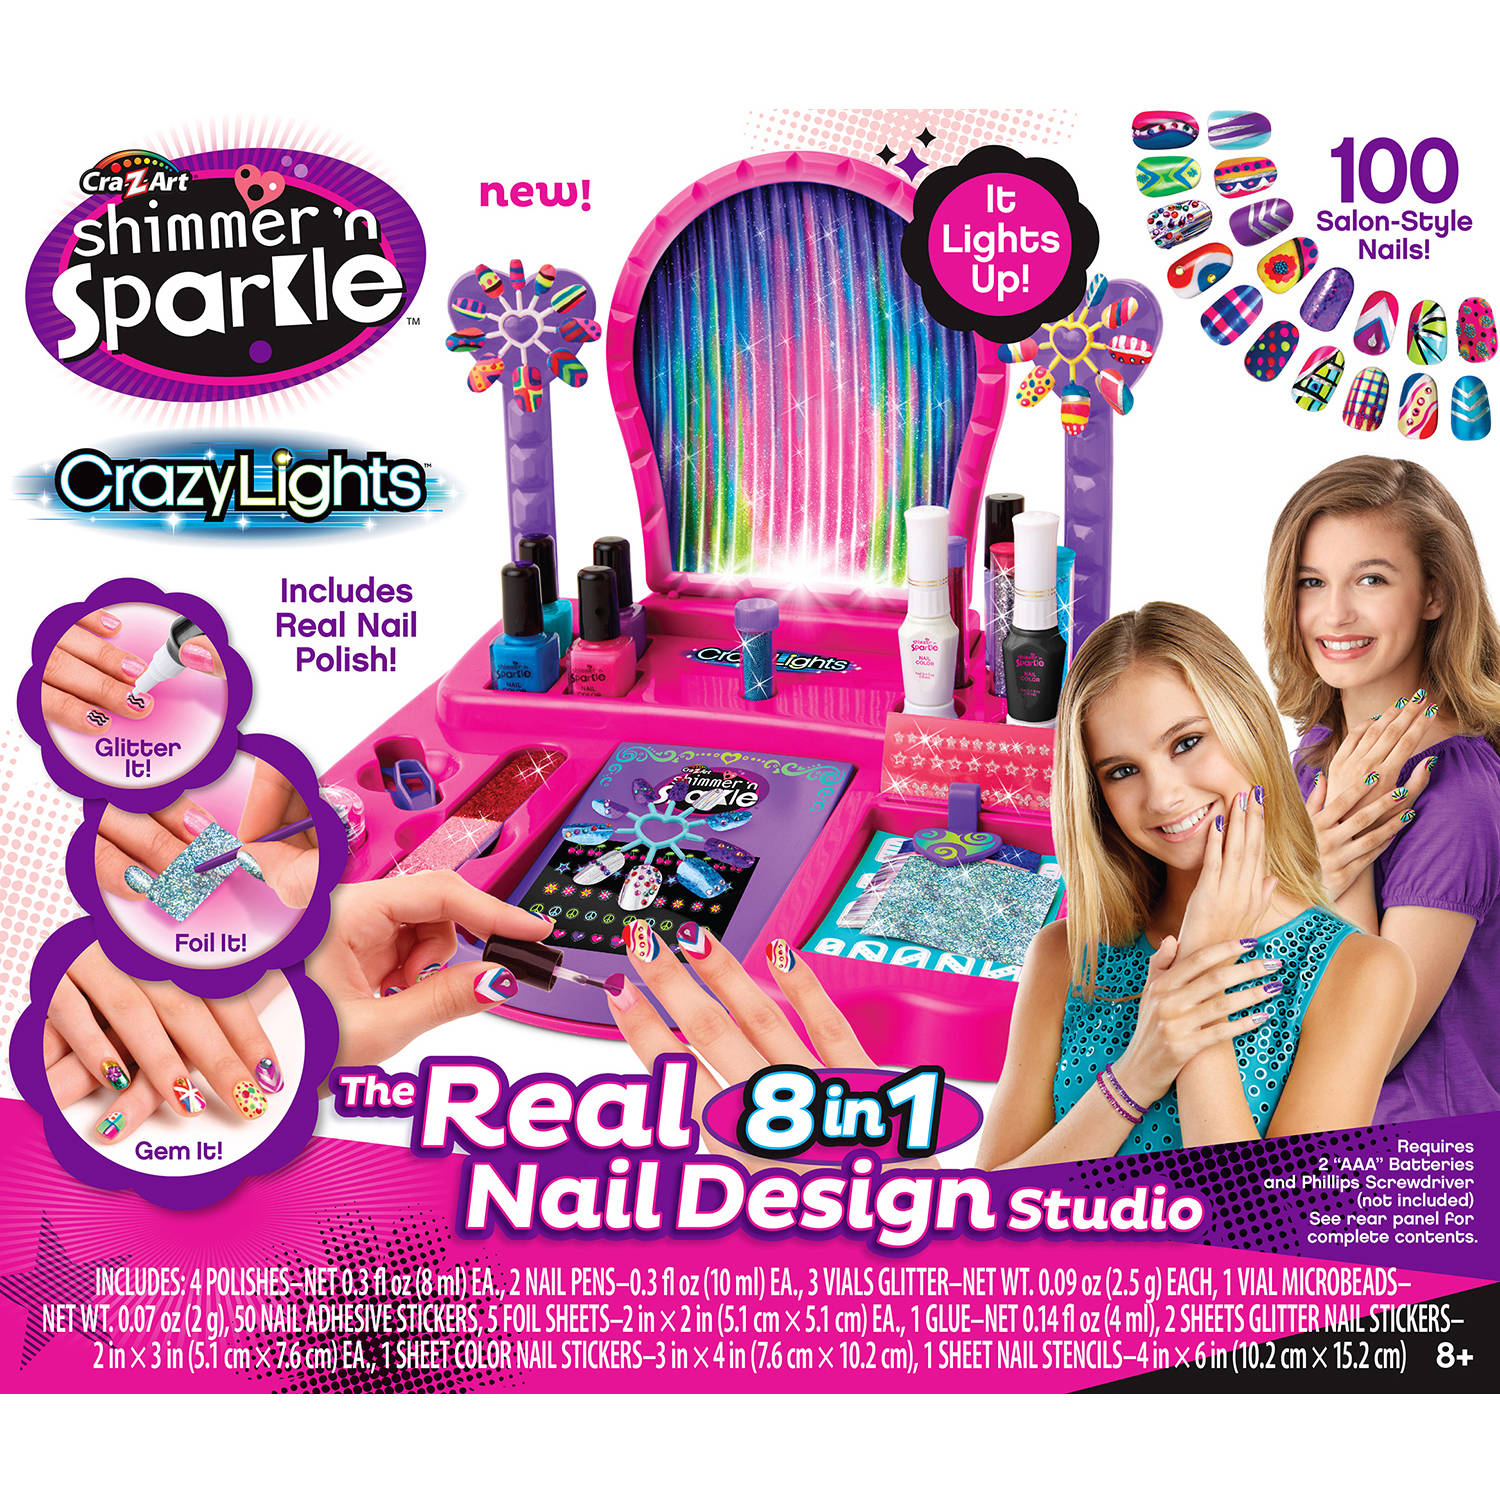 Cra-Z-Art Light-Up Super Nail Salon